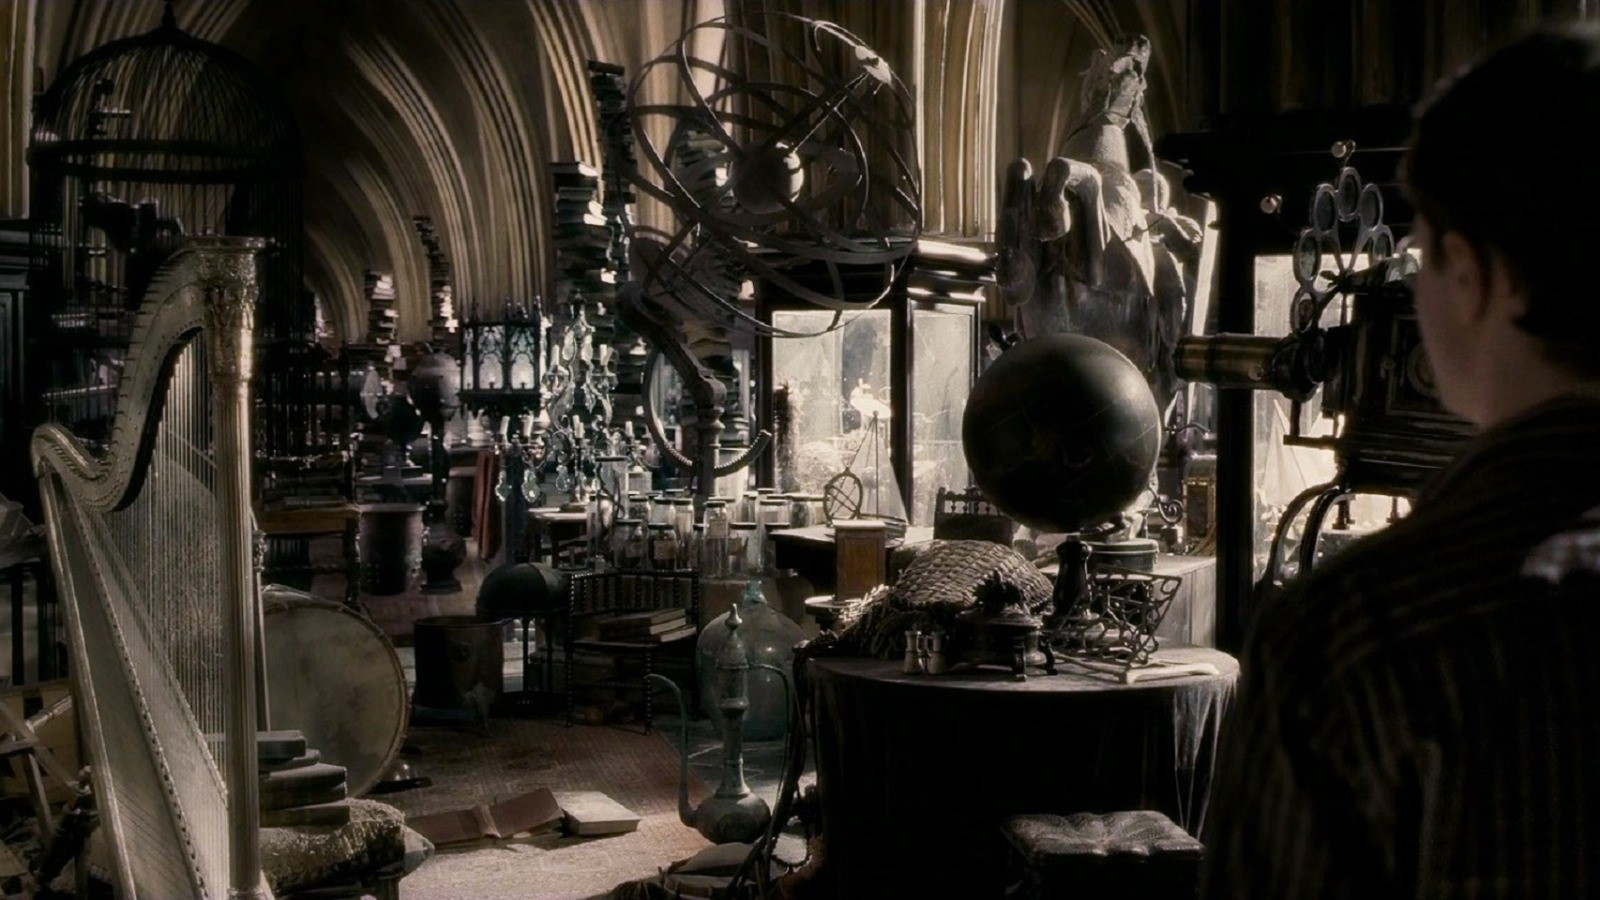 The Wizarding World meets Architectural world - Sheet33